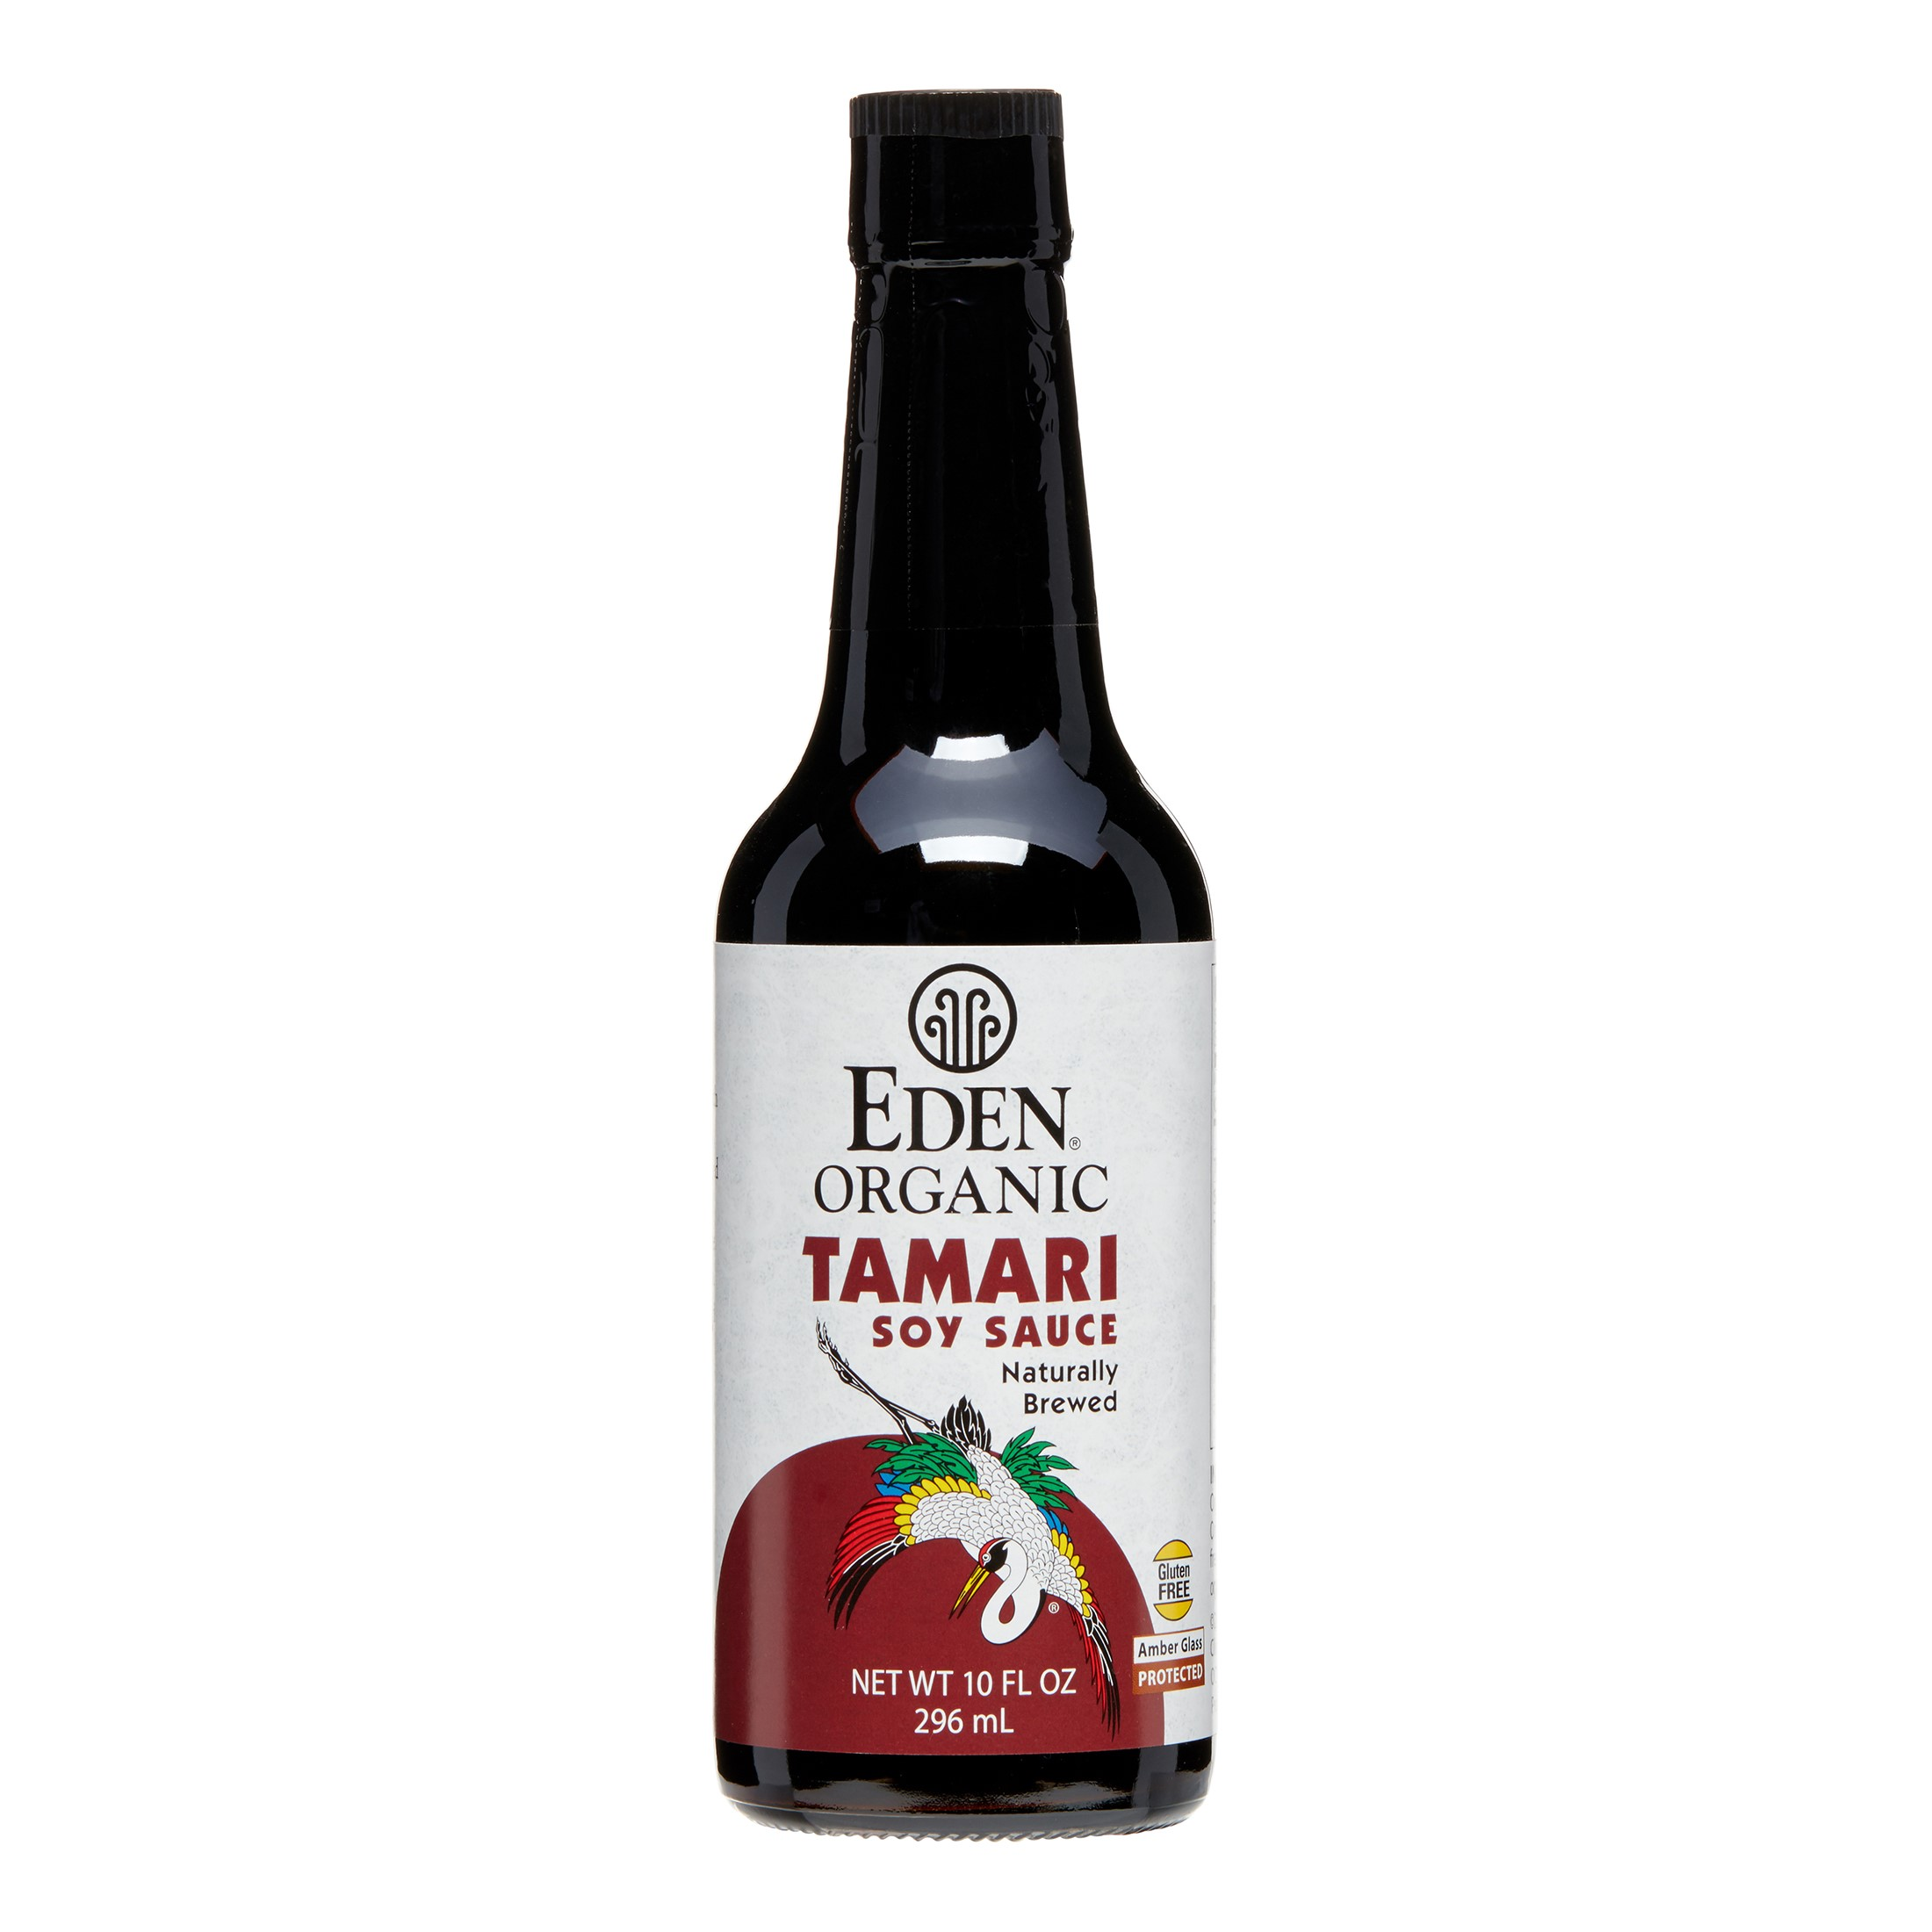 Eden Foods Organic Naturally Brewed Tamari Soy Sauce, 10 fl oz by Eden Foods